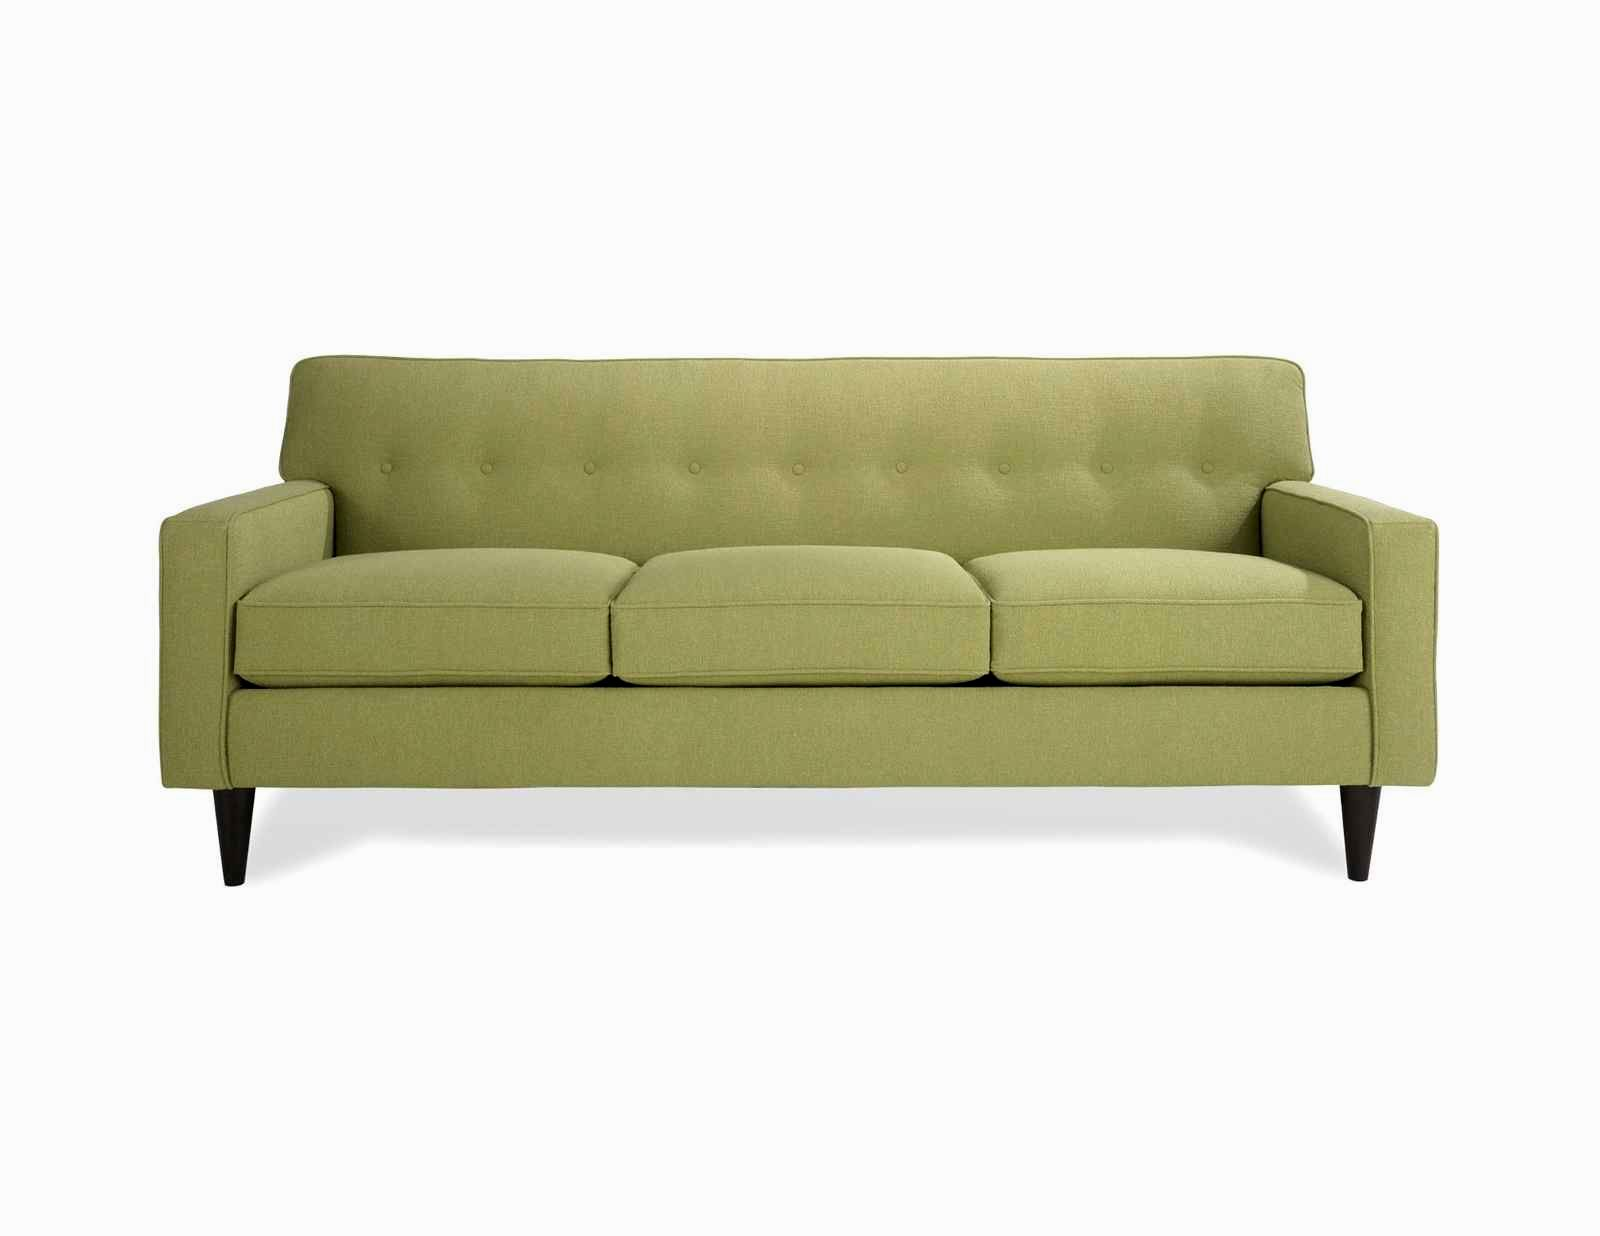 Fantastic Cheap Sofas For Under 100 Photograph